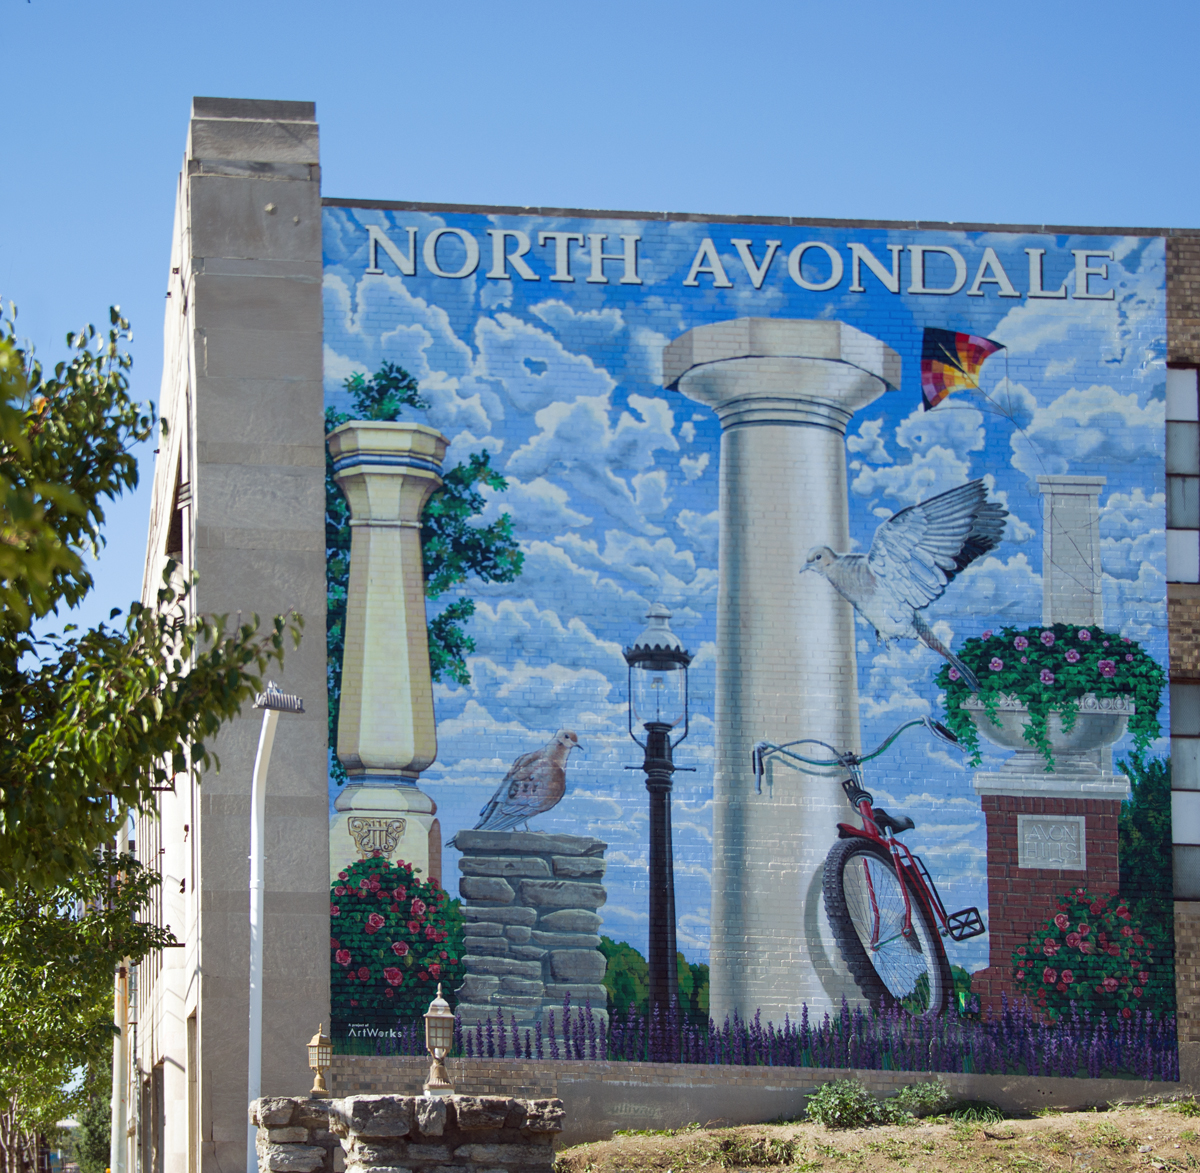 Ode to North Avondale